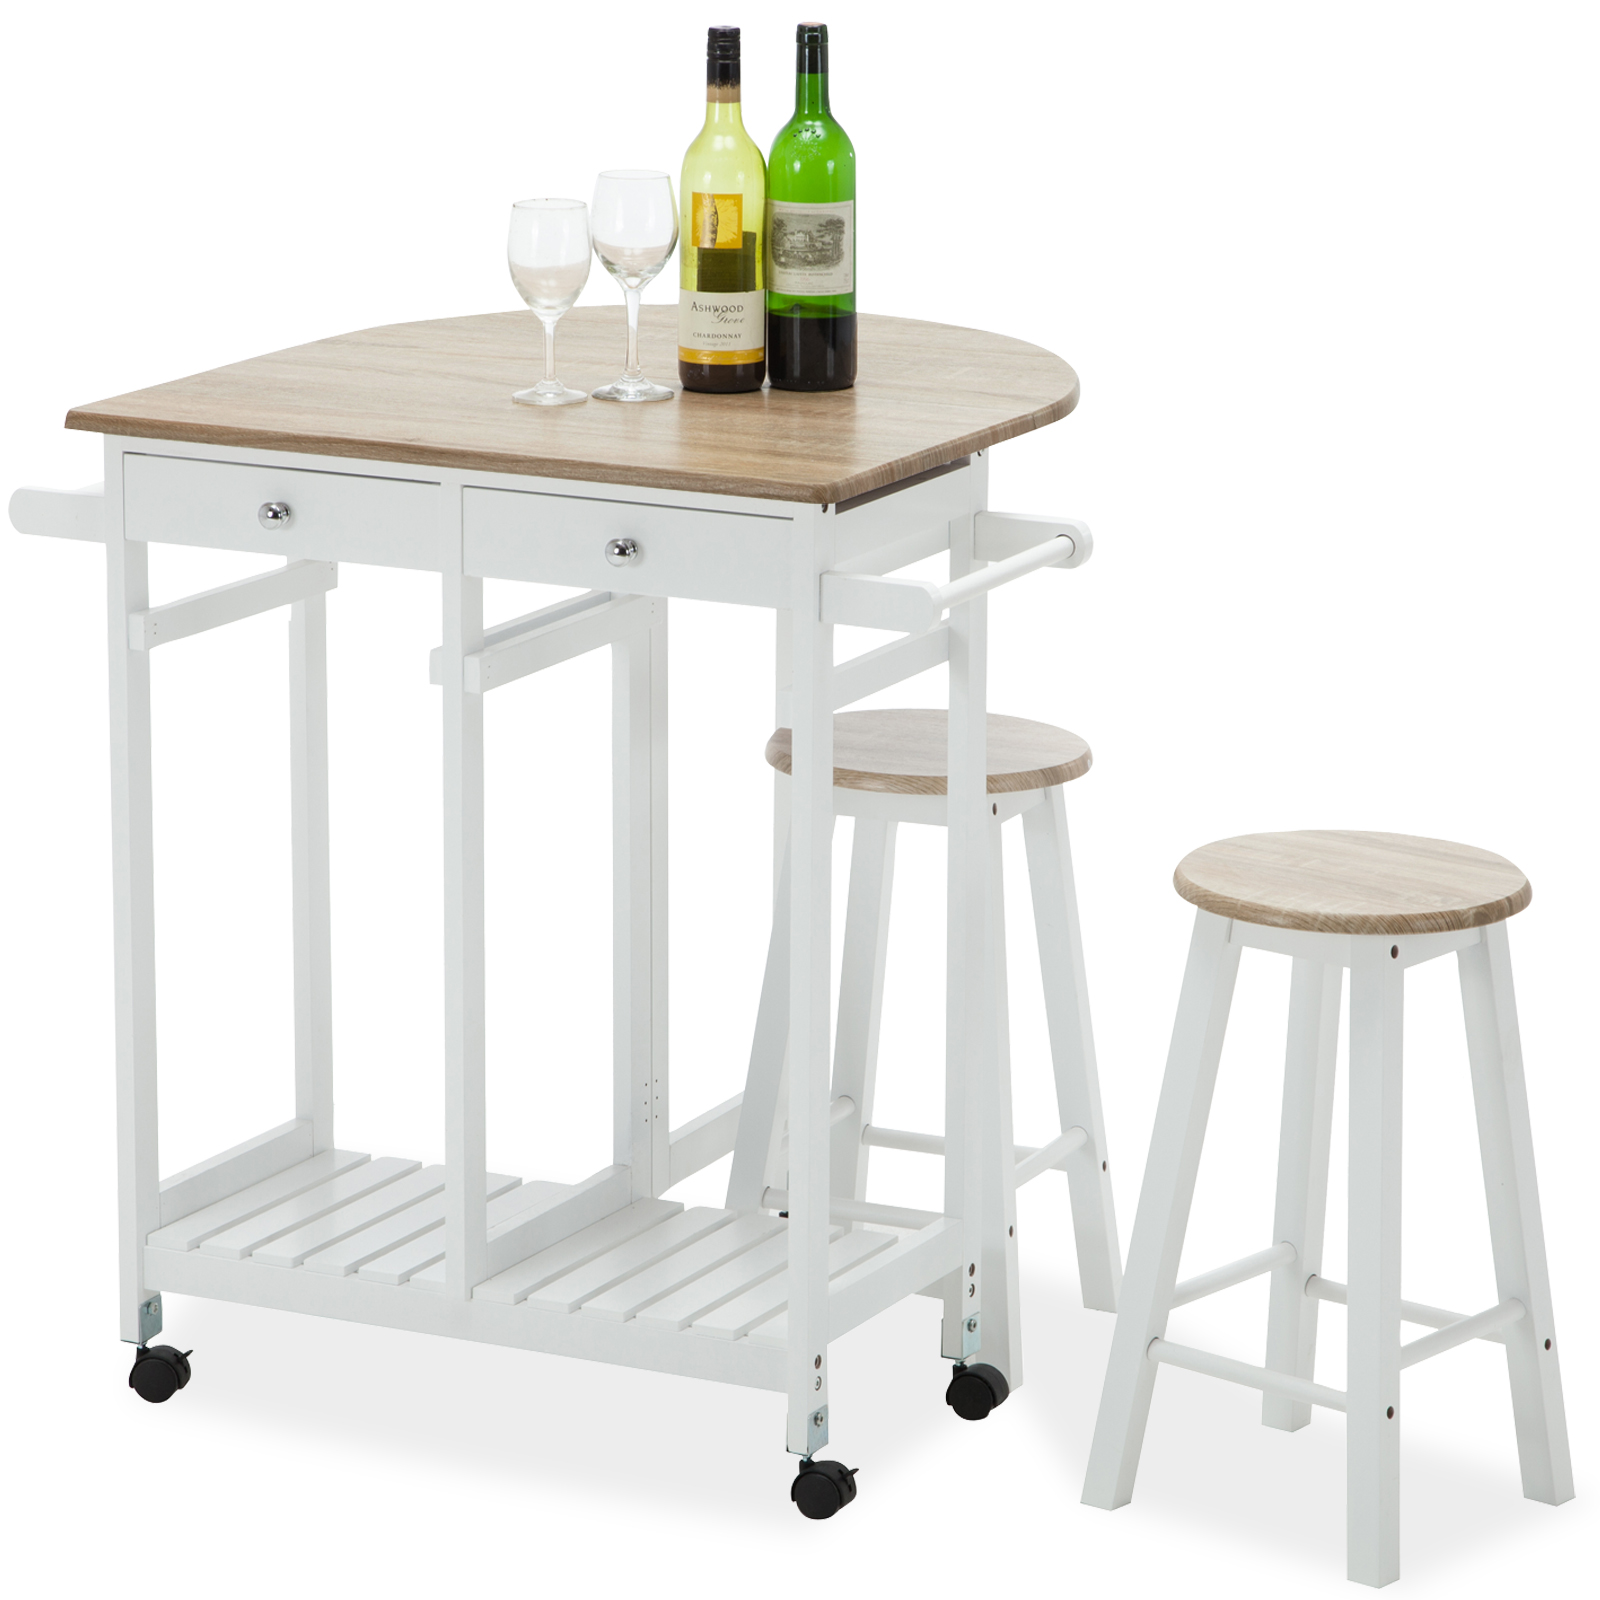 Modern Kitchen Bar Stools Kitchen Islands With Table: Oak Kitchen Island Cart Trolley Storage Dining Table 2 Bar